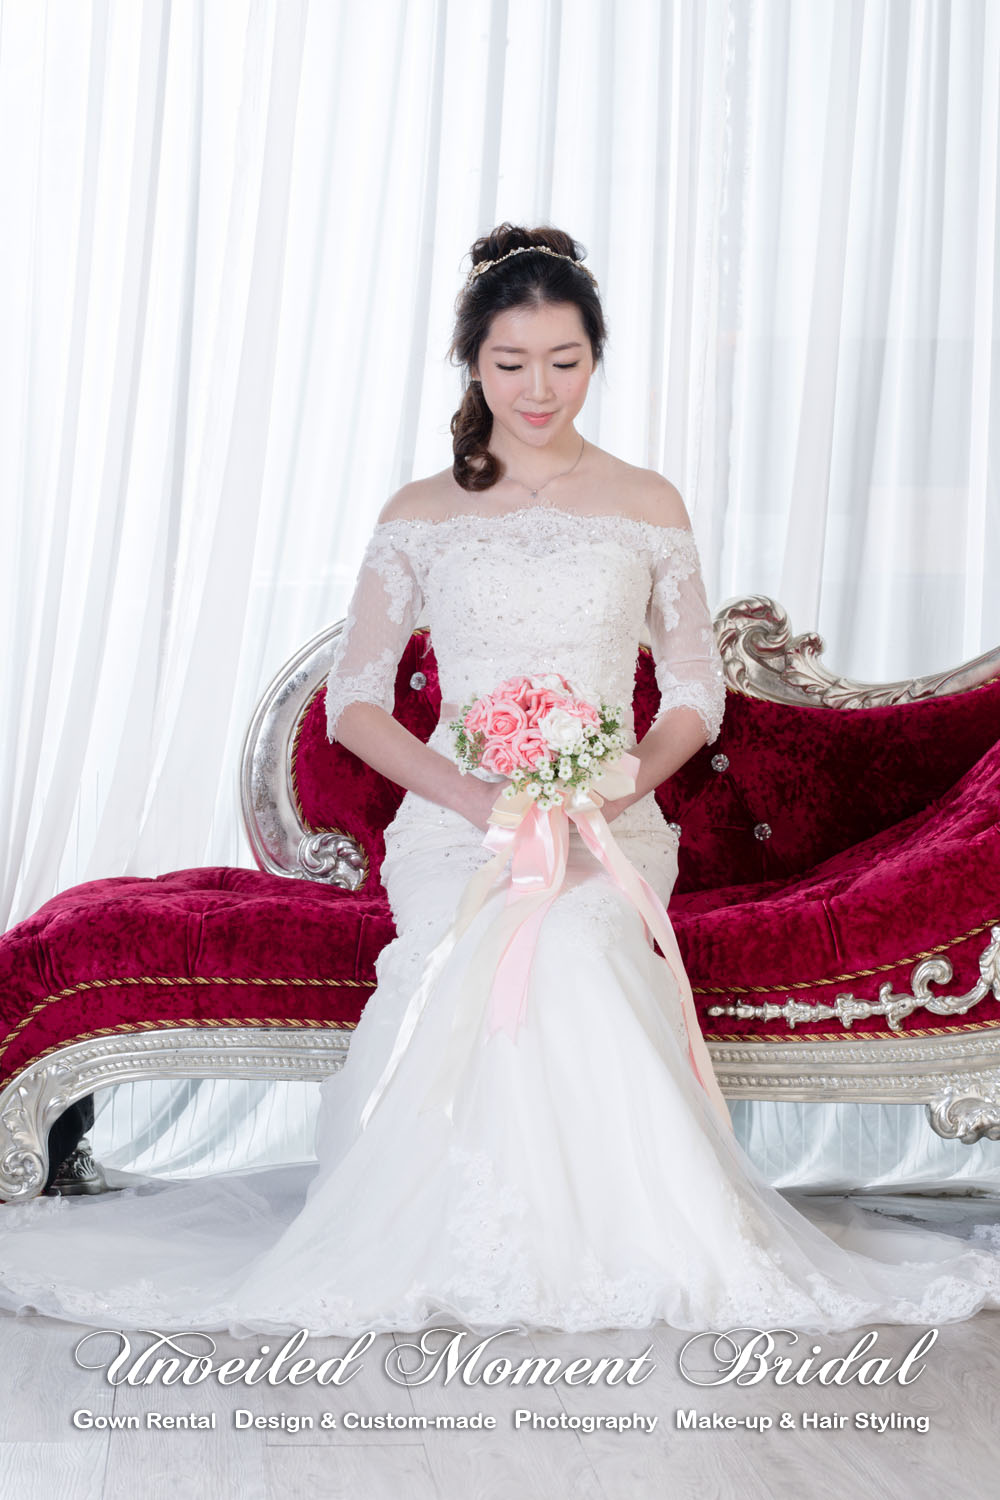 Off-the-shoulder, quarter sleeved, mermaid, lace wedding gown with a contrasting colour waist band, and a court train 一字膊, 中袖, 蕾絲釘珠, 香檳色腰帶, 拖尾, 魚尾婚紗